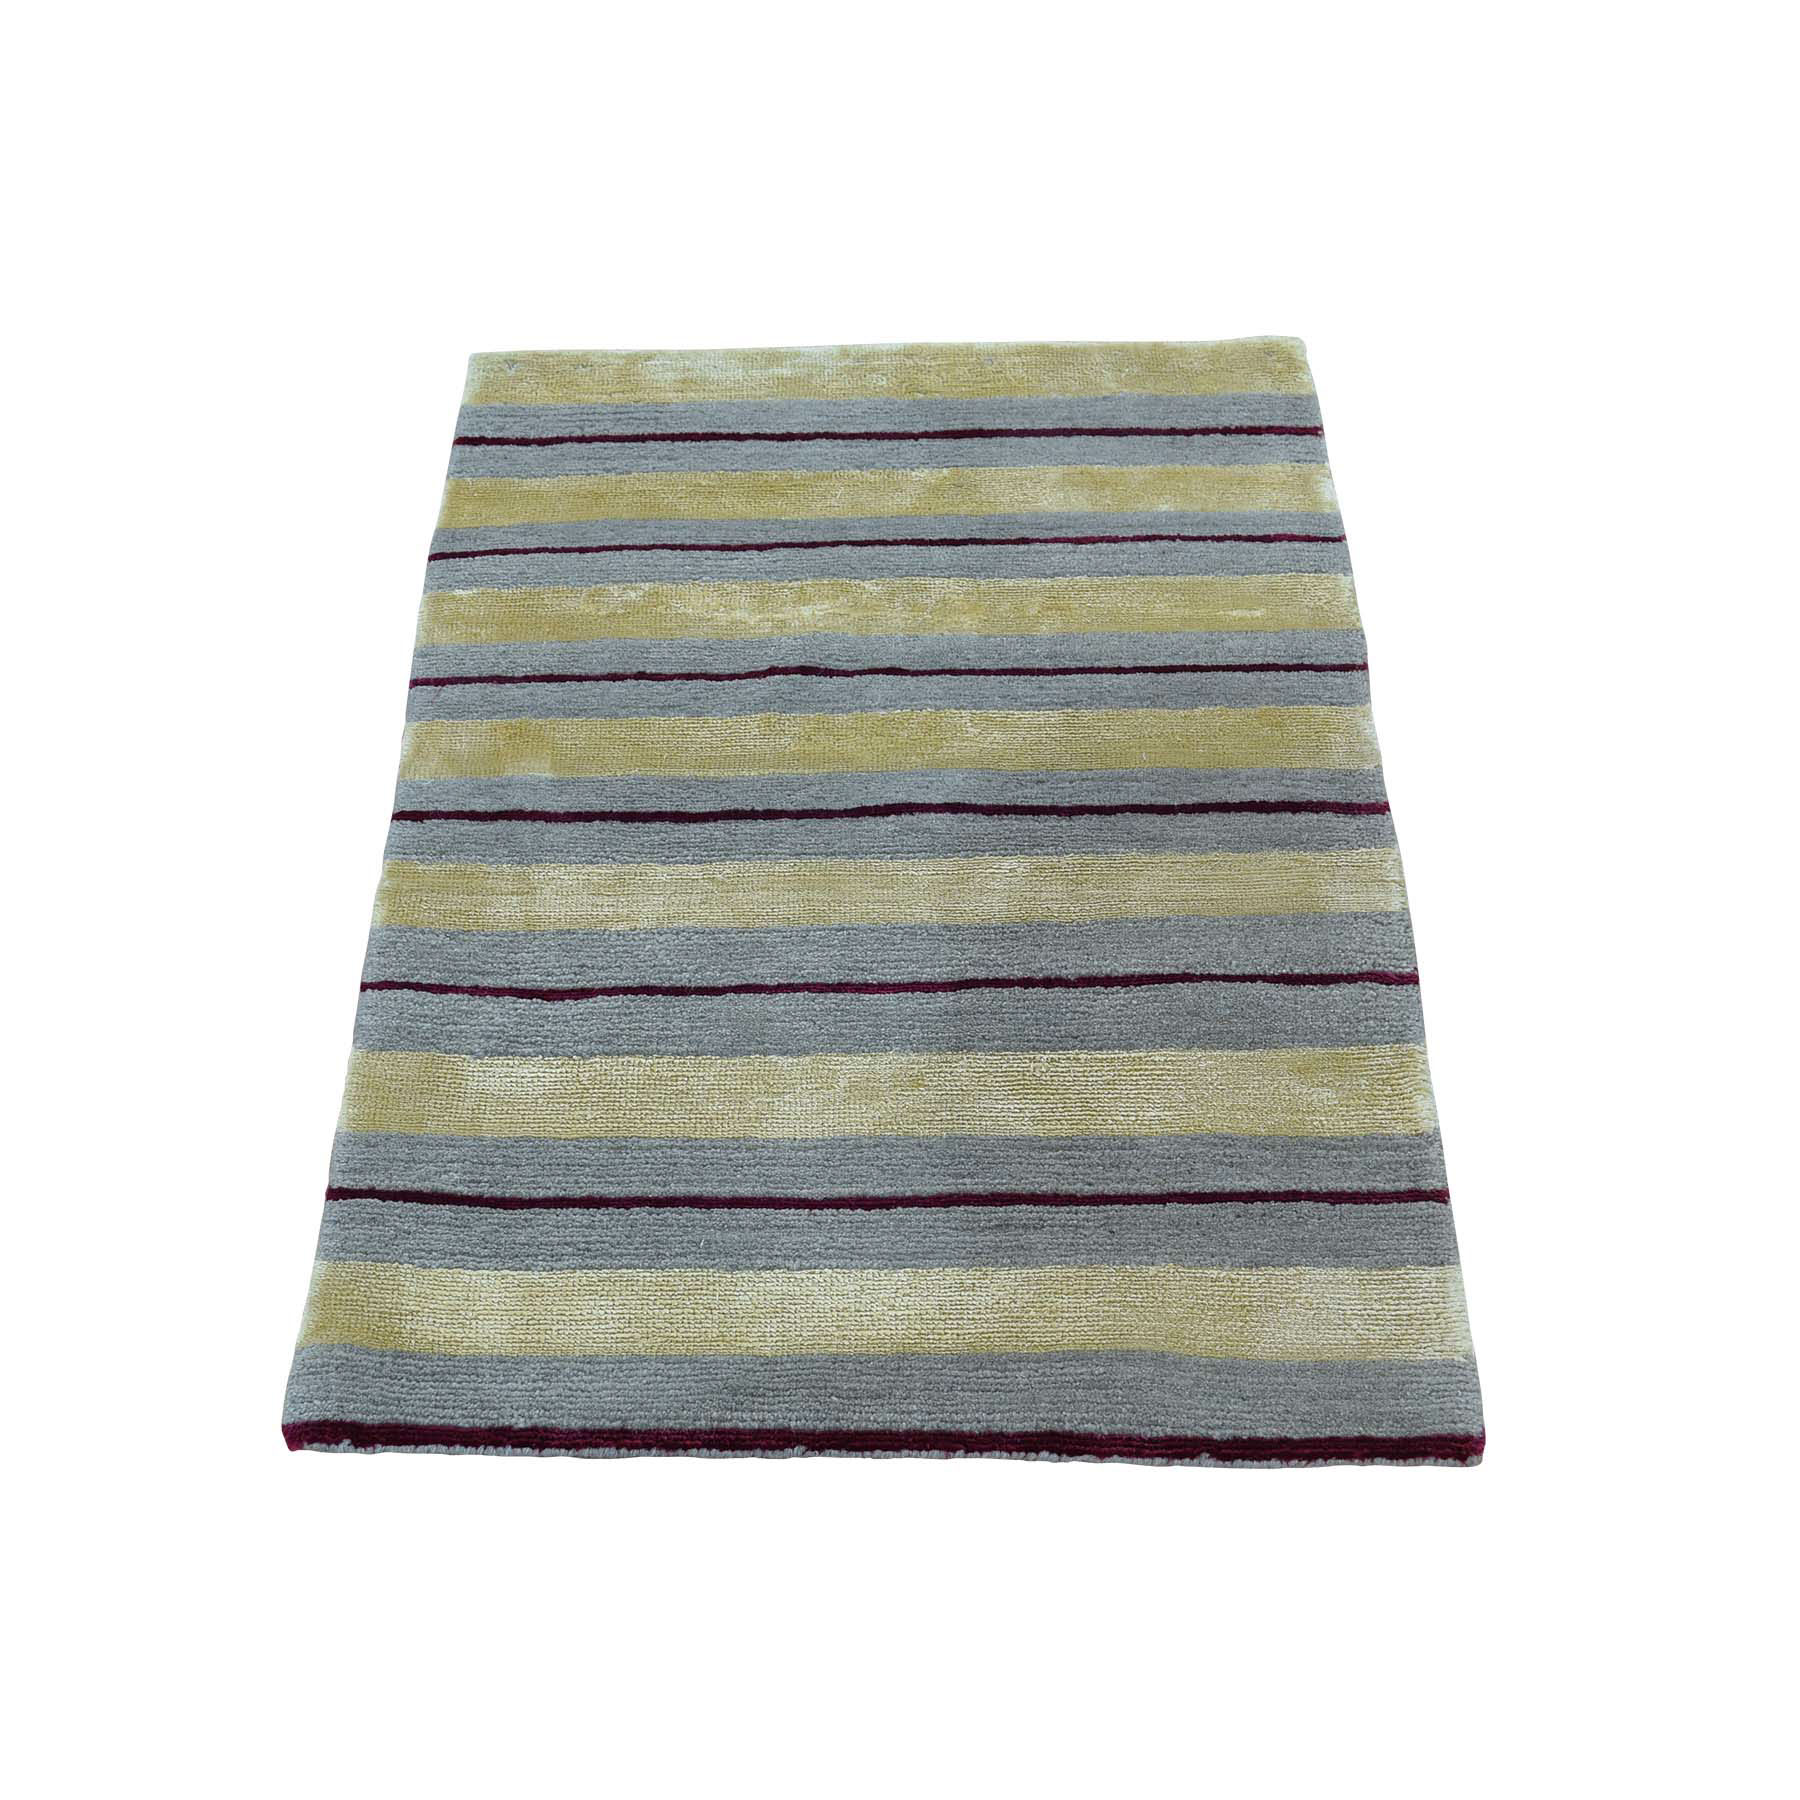 Mid Century Modern Collection Hand Knotted Multicolored Rug No: 0172406